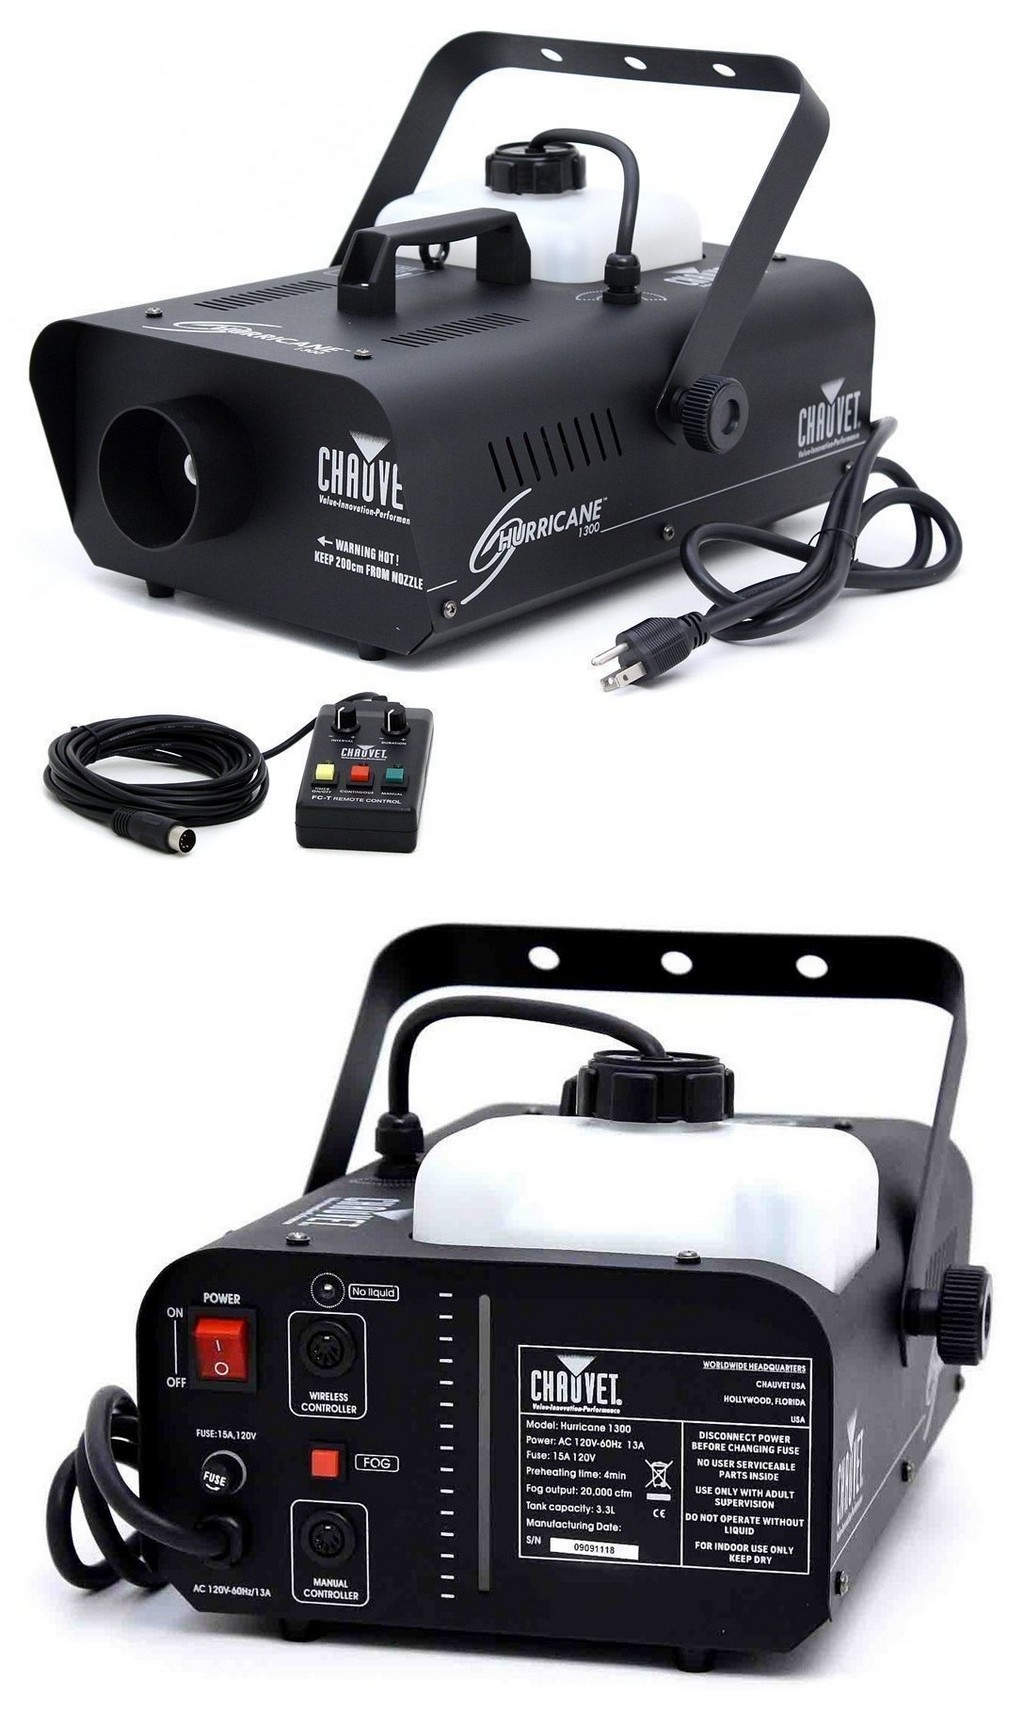 portable fog machine, battery fog machine, best fog machine